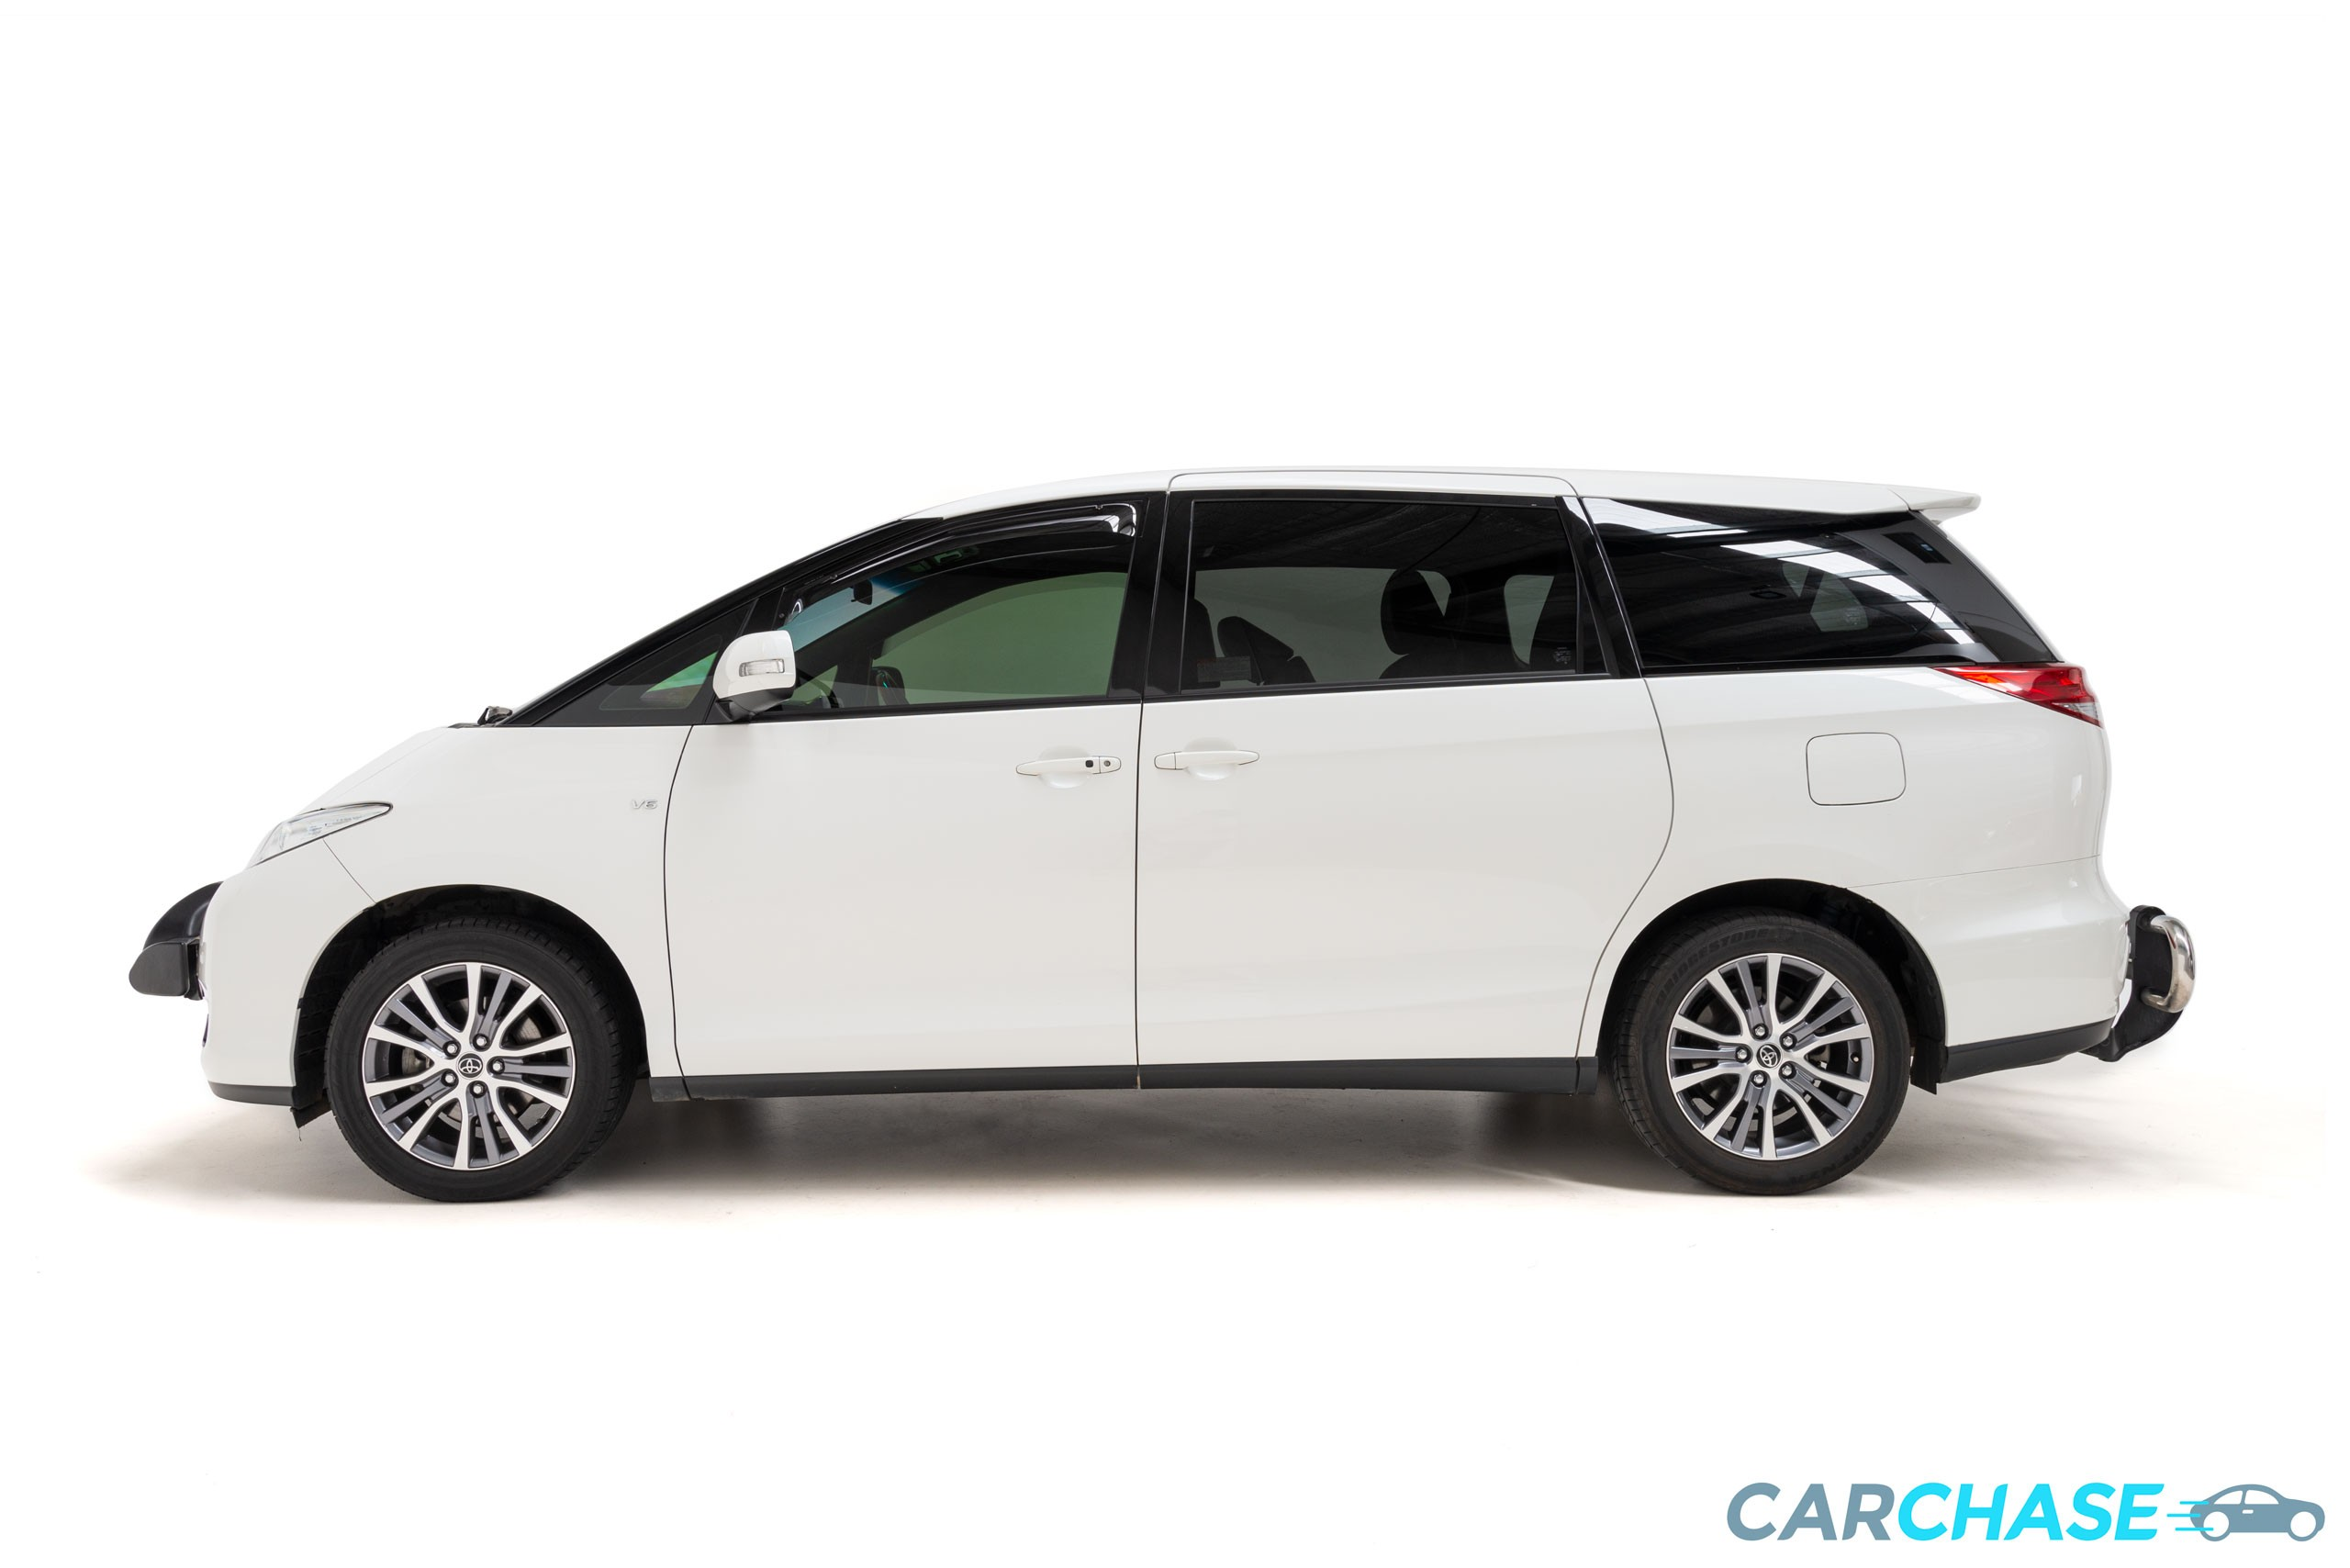 Image of left profile of 2017 Toyota Tarago Ultima